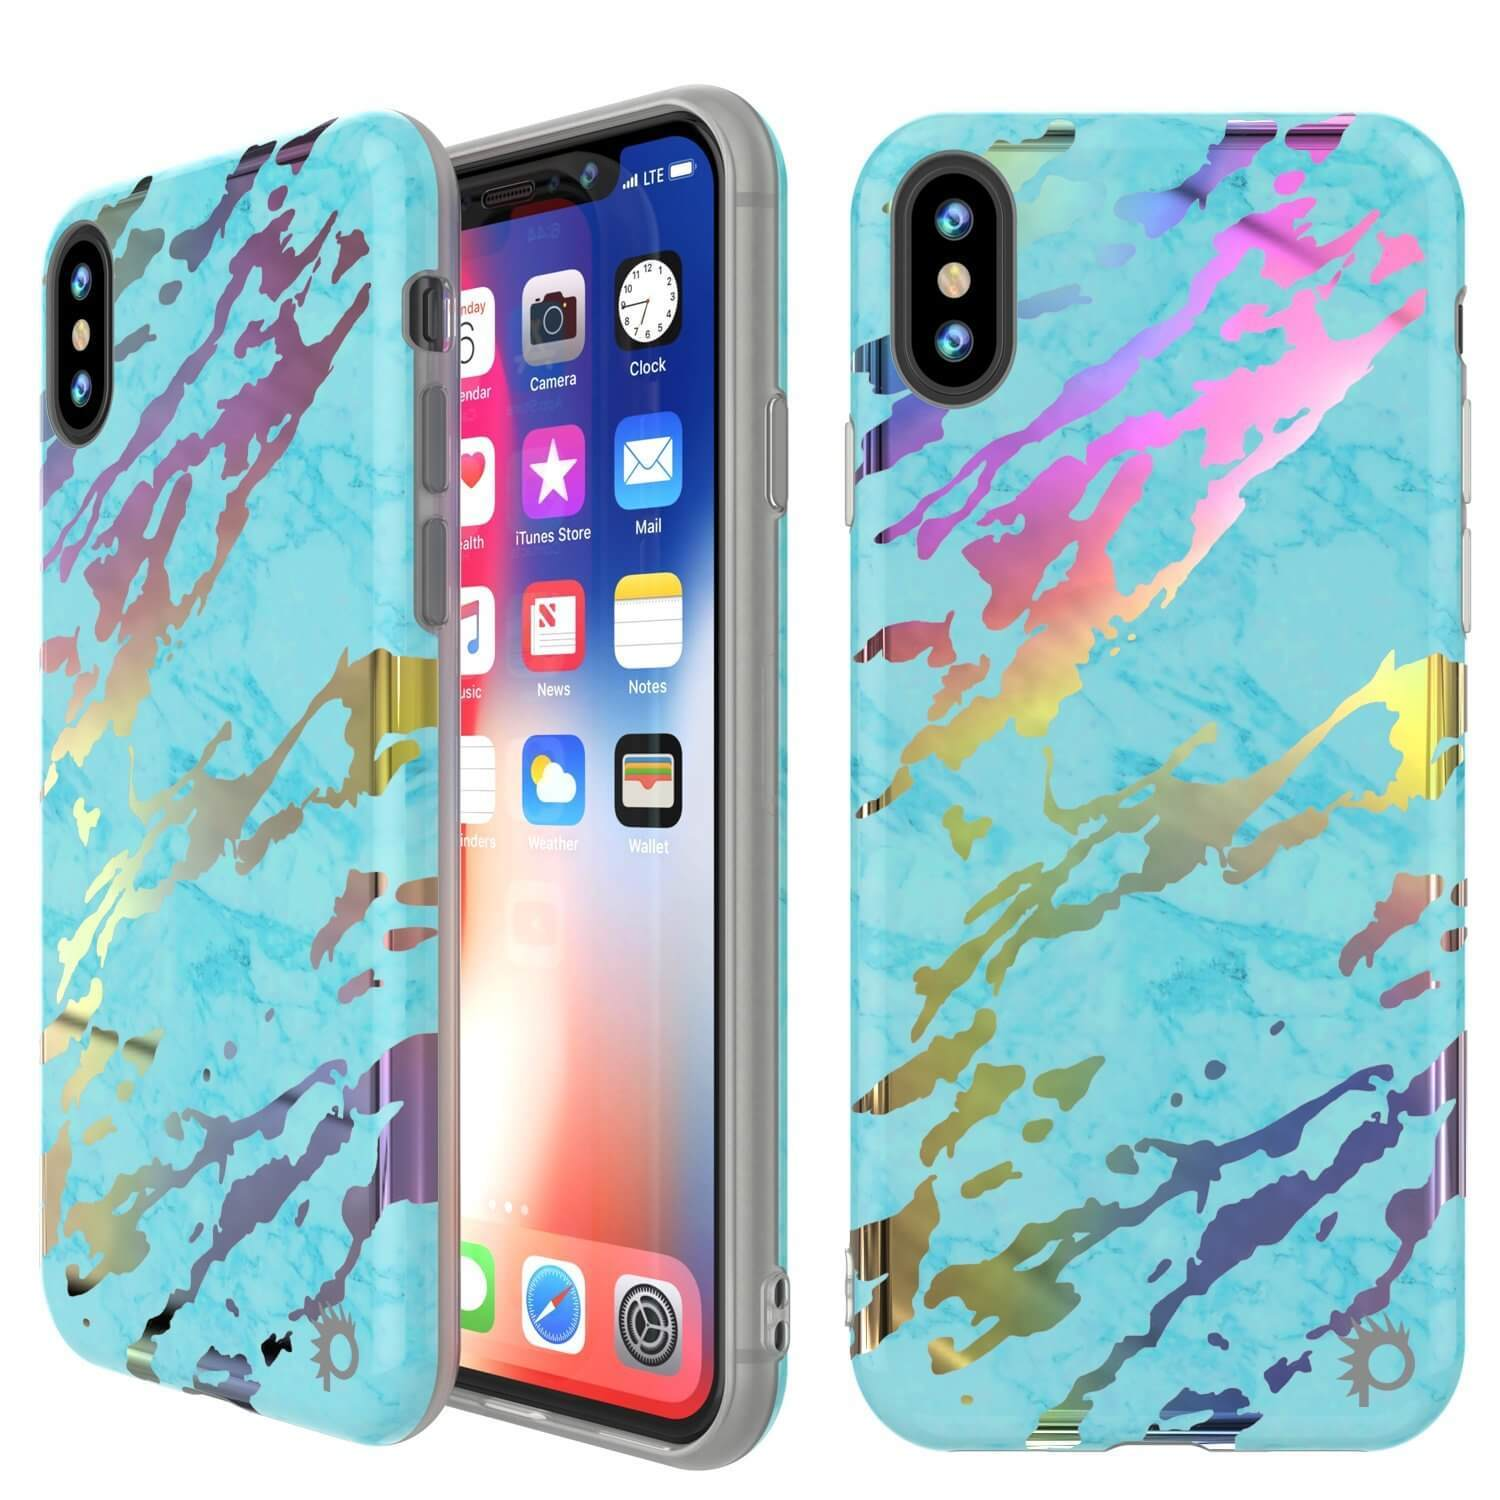 Punkcase iPhone X Marble Case, Protective Full Body Cover W/9H Tempered Glass Screen Protector (Teal Onyx)